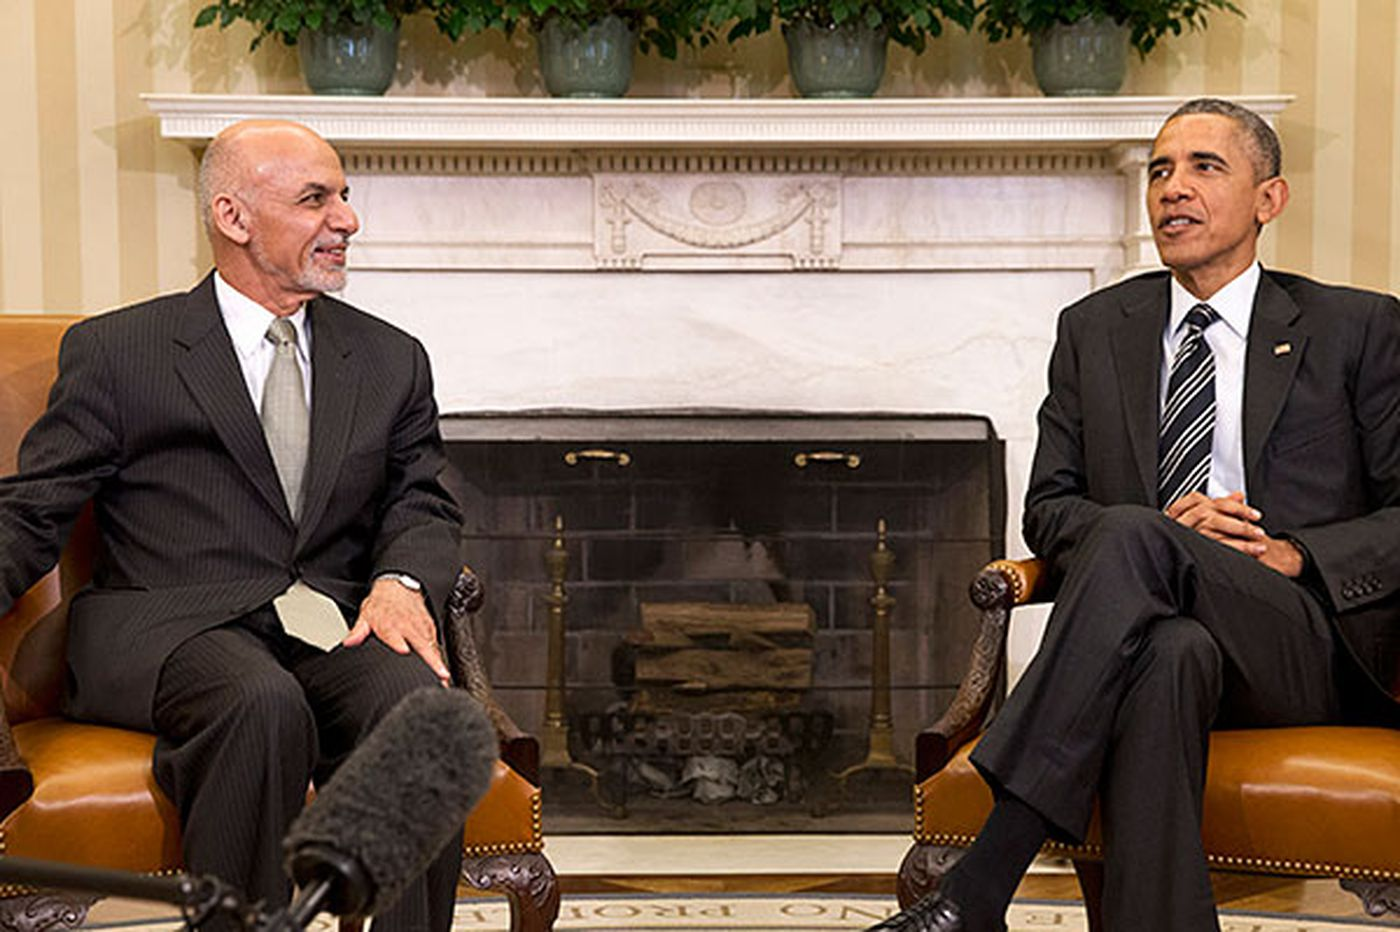 Worldview: U.S. gains friend in Ghani, but does not return favor